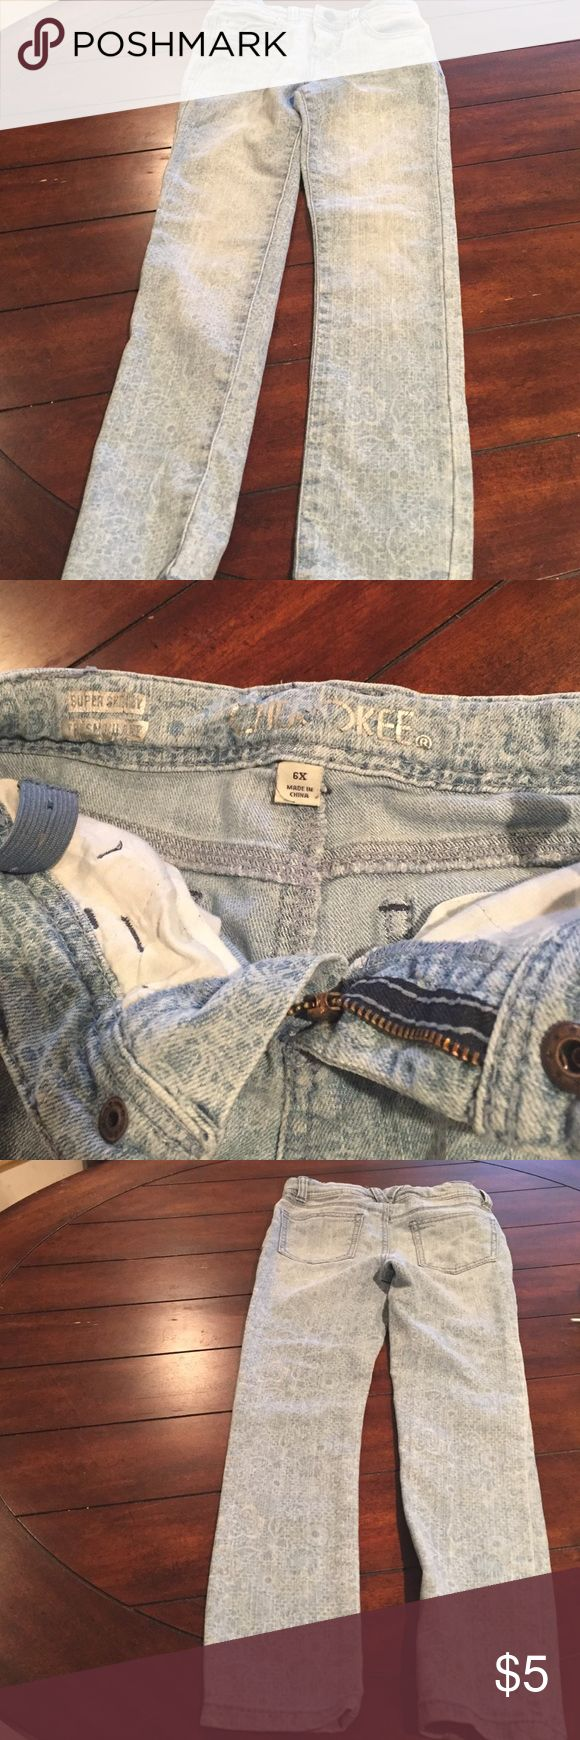 Cherokee Brand Used Girls Jeans Size 6x Cherokee Brand Used Girls Jeans Size 6x With adjustable straps with normal wear please see all photos thank you Cherokee Bottoms Jeans